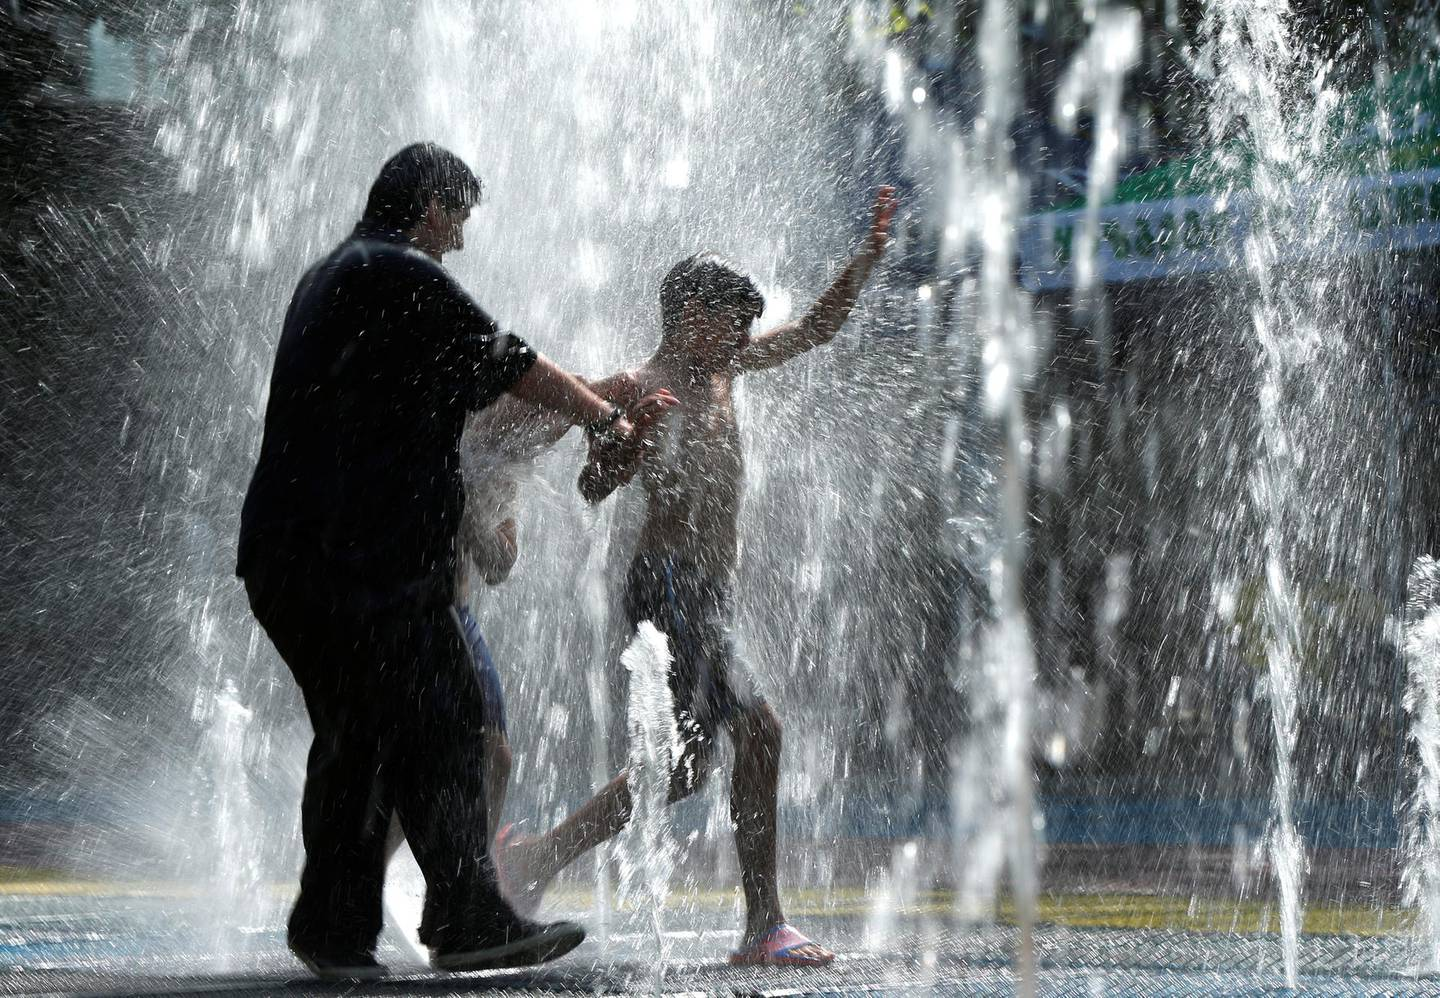 People cool off in a water fountain on a hot summer day in Tbilisi, Georgia, July 2, 2018. REUTERS/David Mdzinarishvili